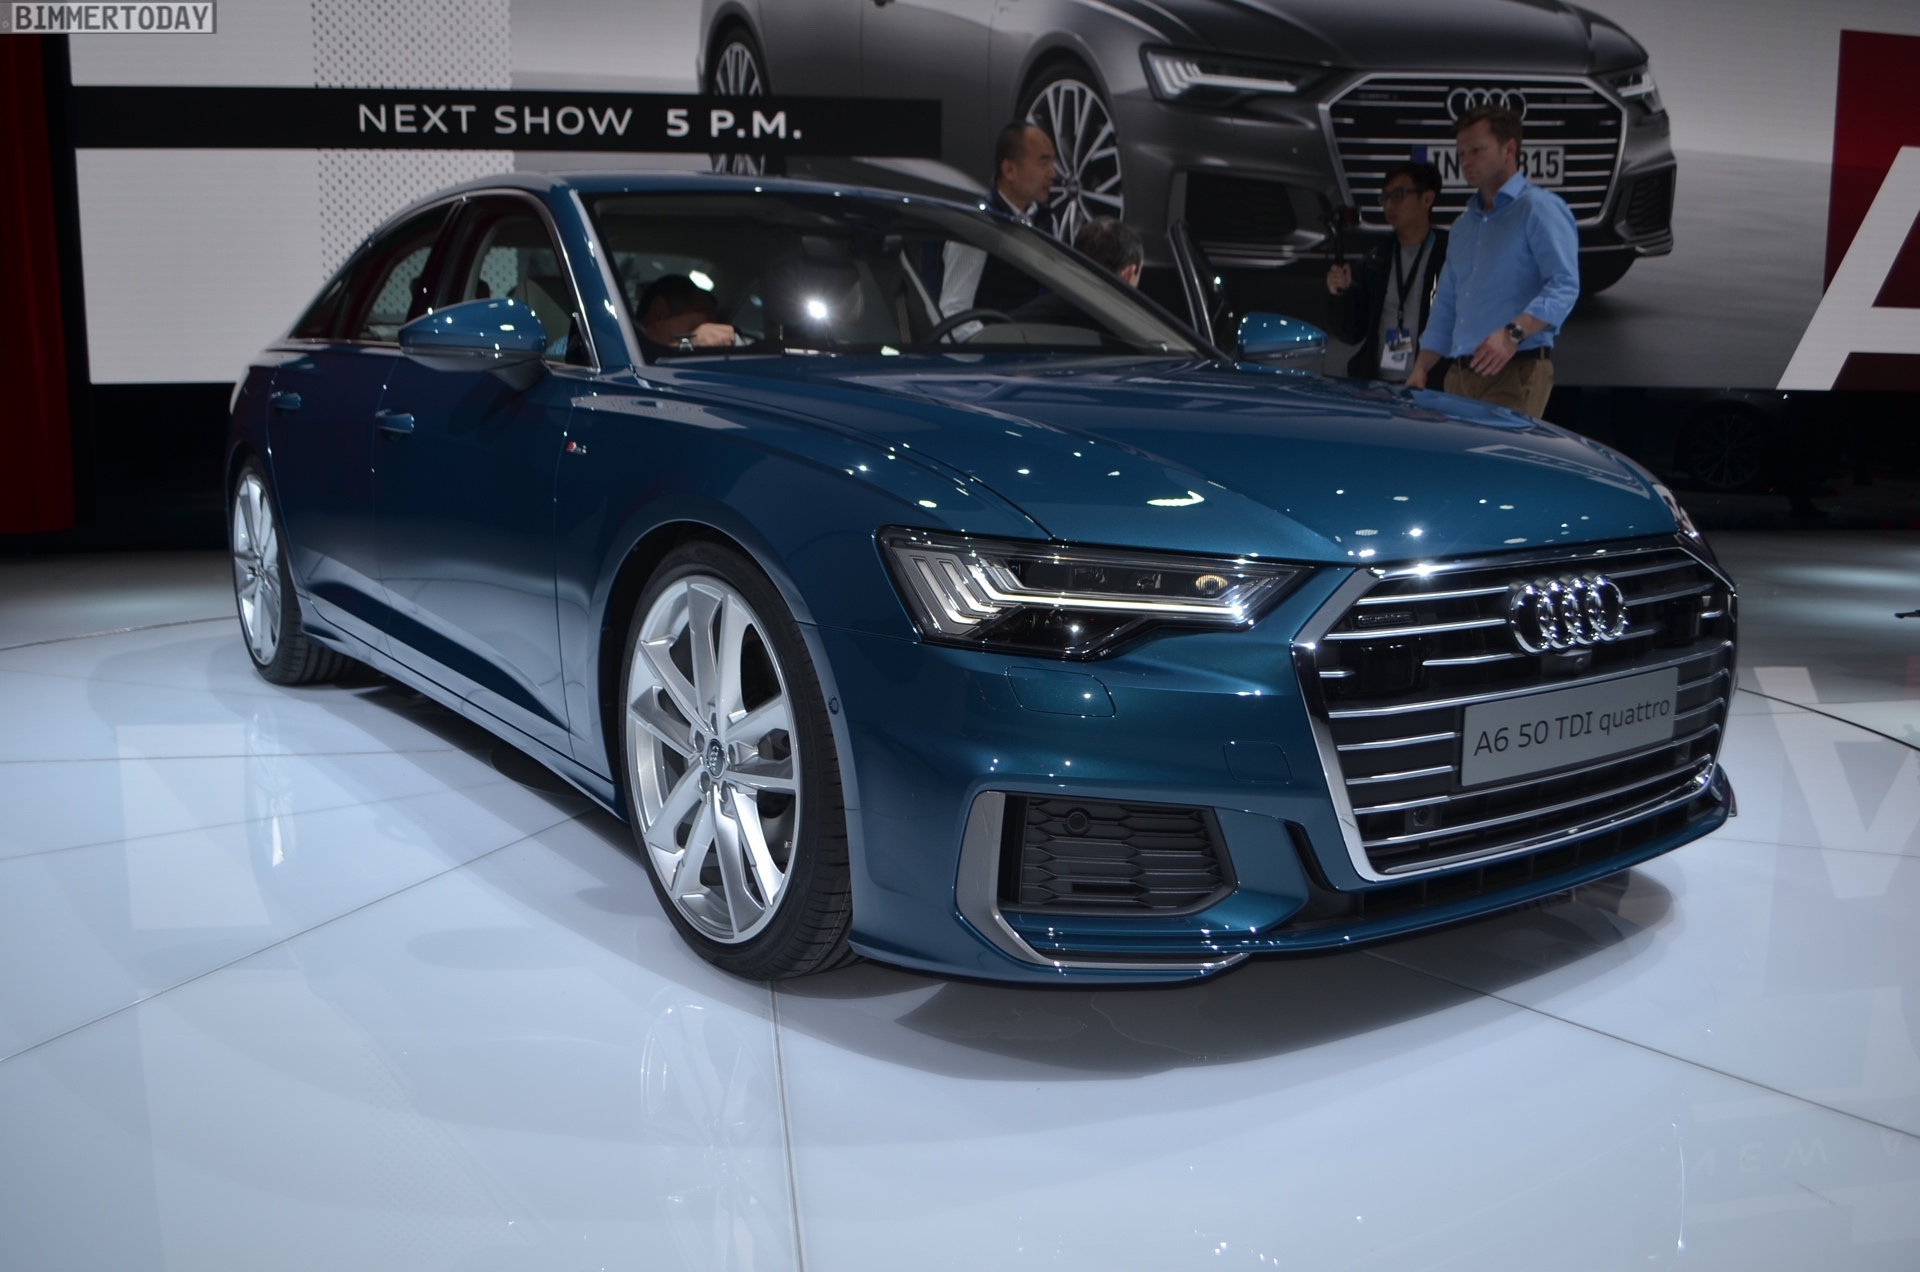 2018 geneva motor show live photos of the new audi a6. Black Bedroom Furniture Sets. Home Design Ideas